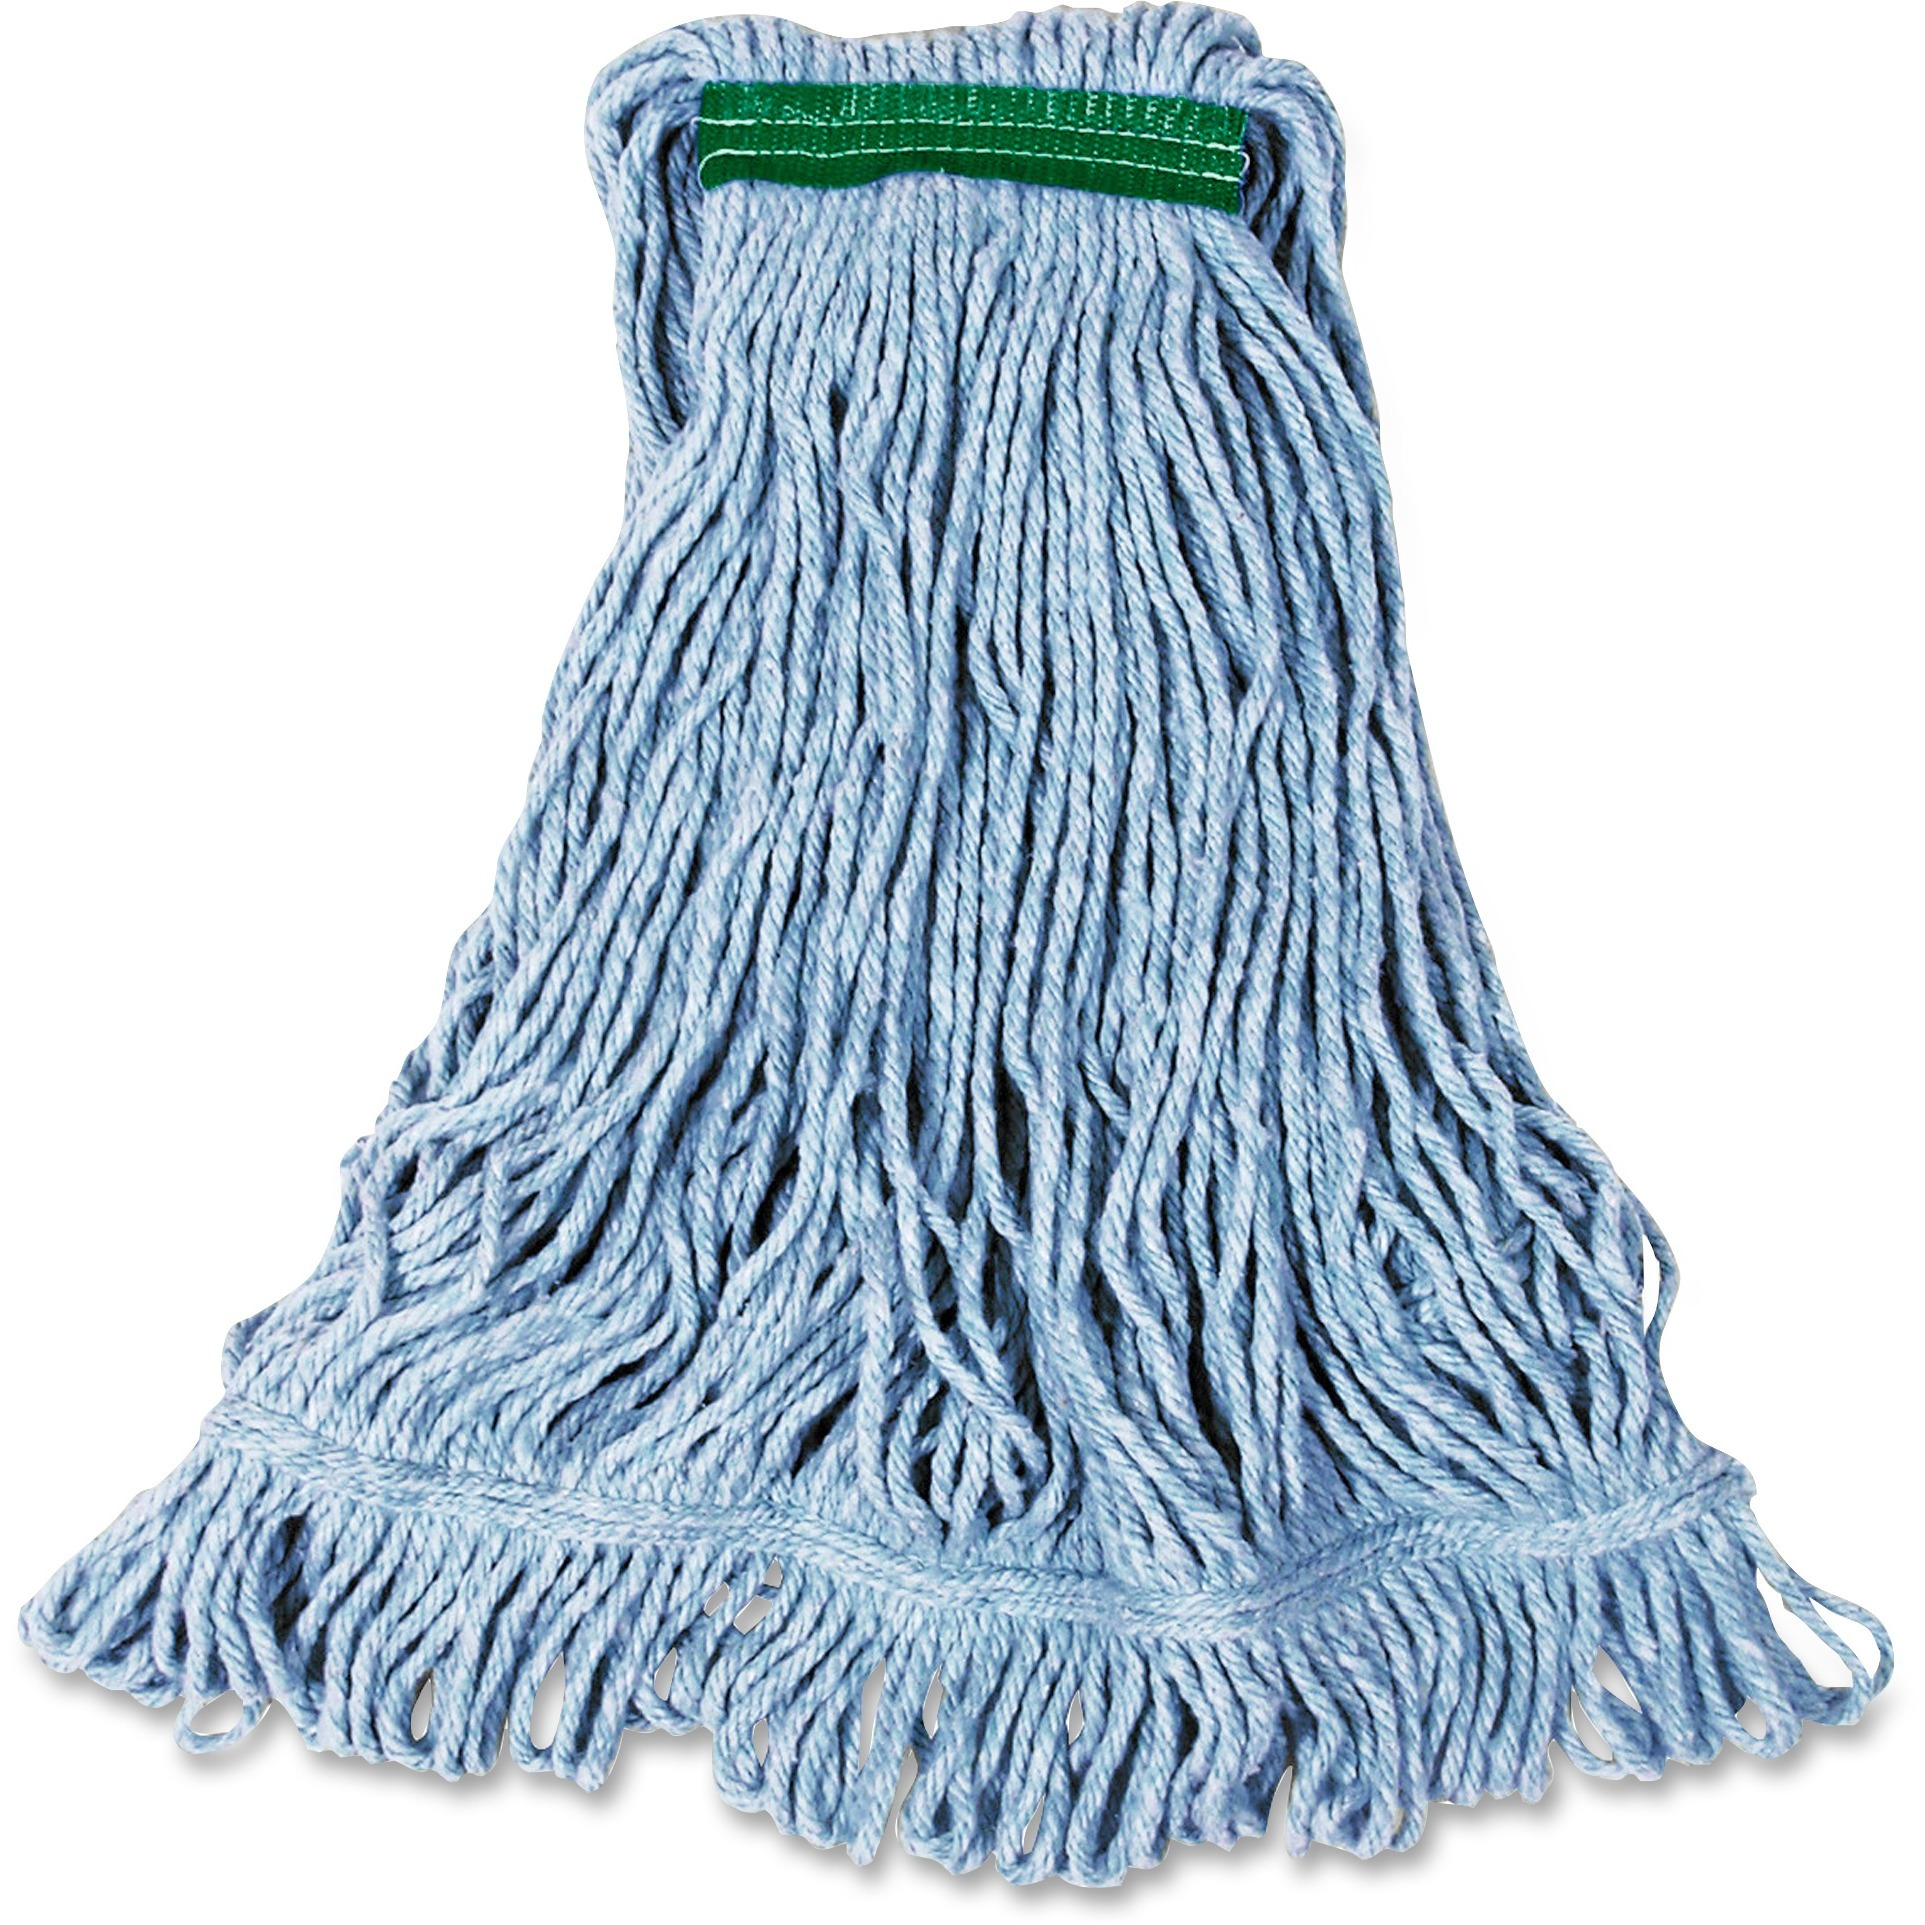 Rubbermaid Commercial, RCPD21206BE, Super Stitch Medium Blend Mop, 1 Each, Green